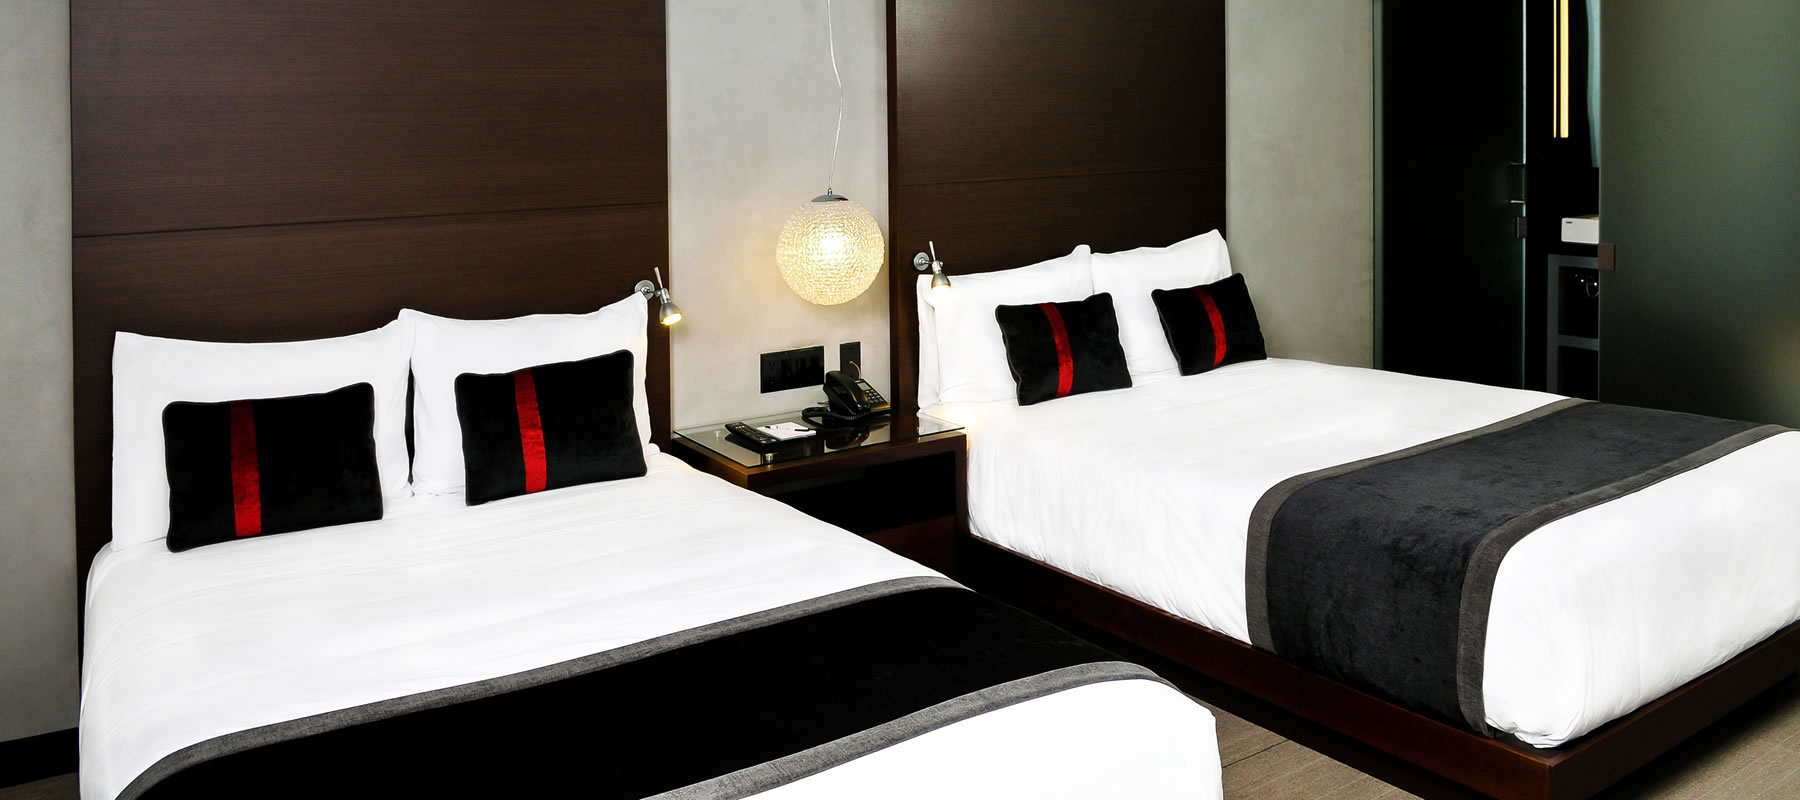 San Diego Hotels  Hercor Hotels Reservations  Urban Boutique